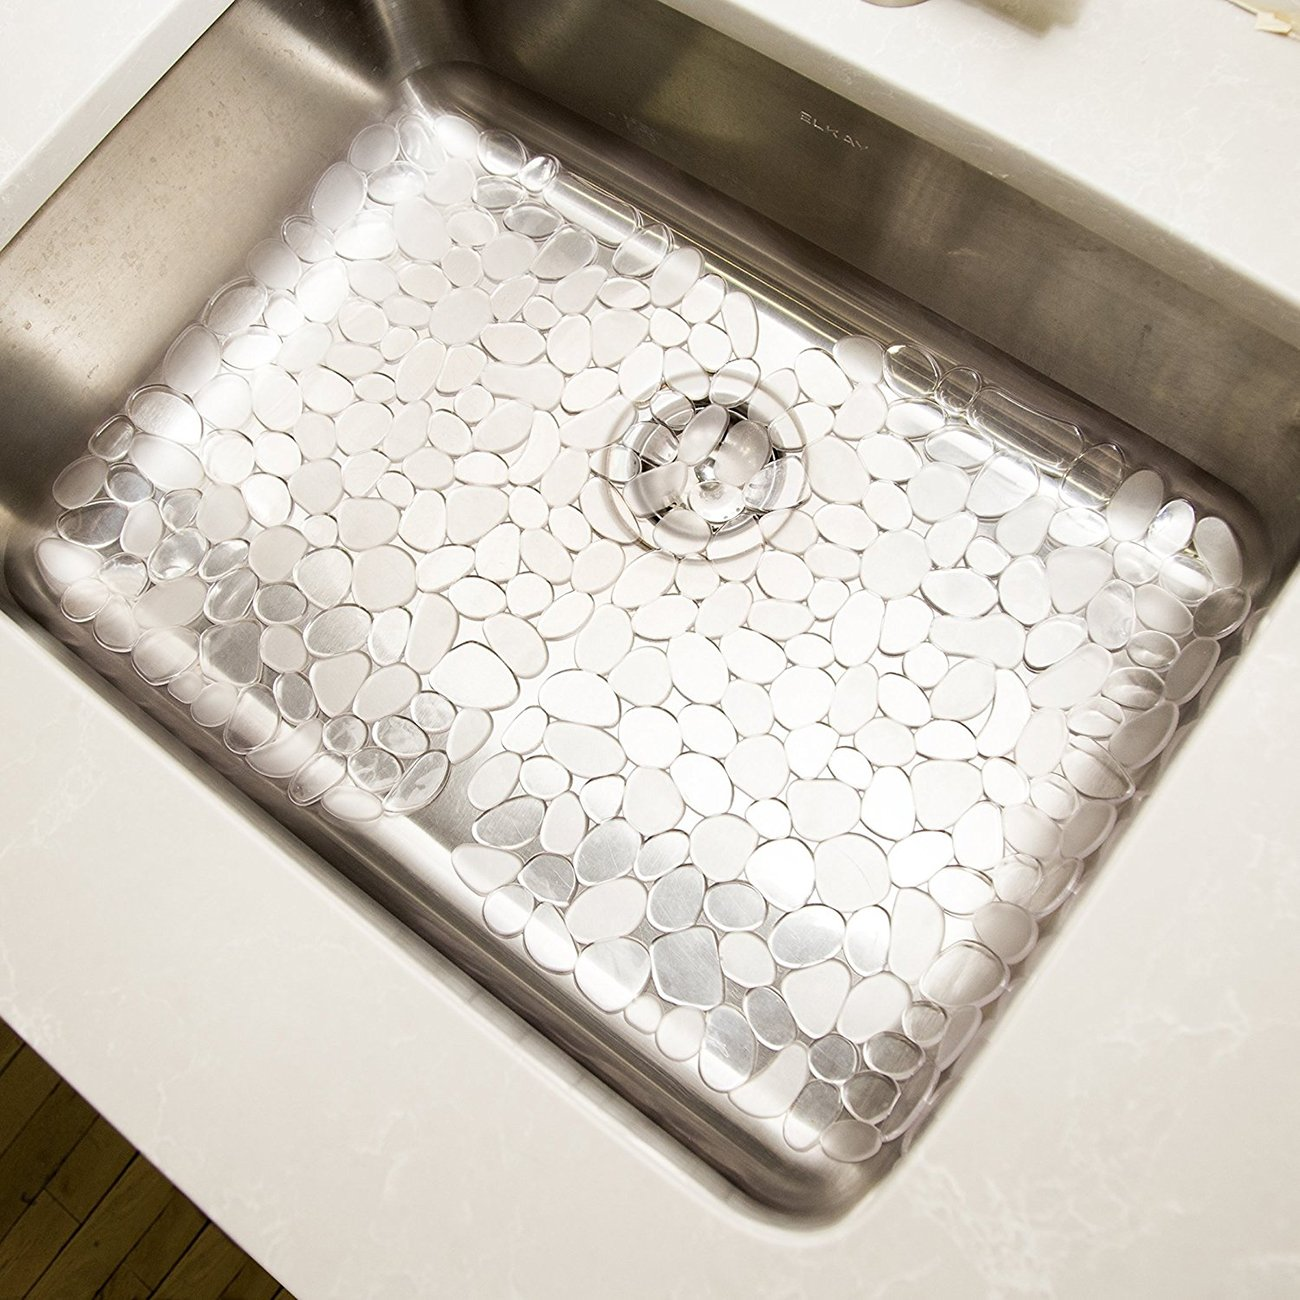 Pebble Kitchen Sink Mat Anti-Bacterial PVC Sink Mat Pad Eco-friendly Kitchen Adjustable Sink Protector by AHYUAN (Clear White 2 Packs) by Ahyuan (Image #1)